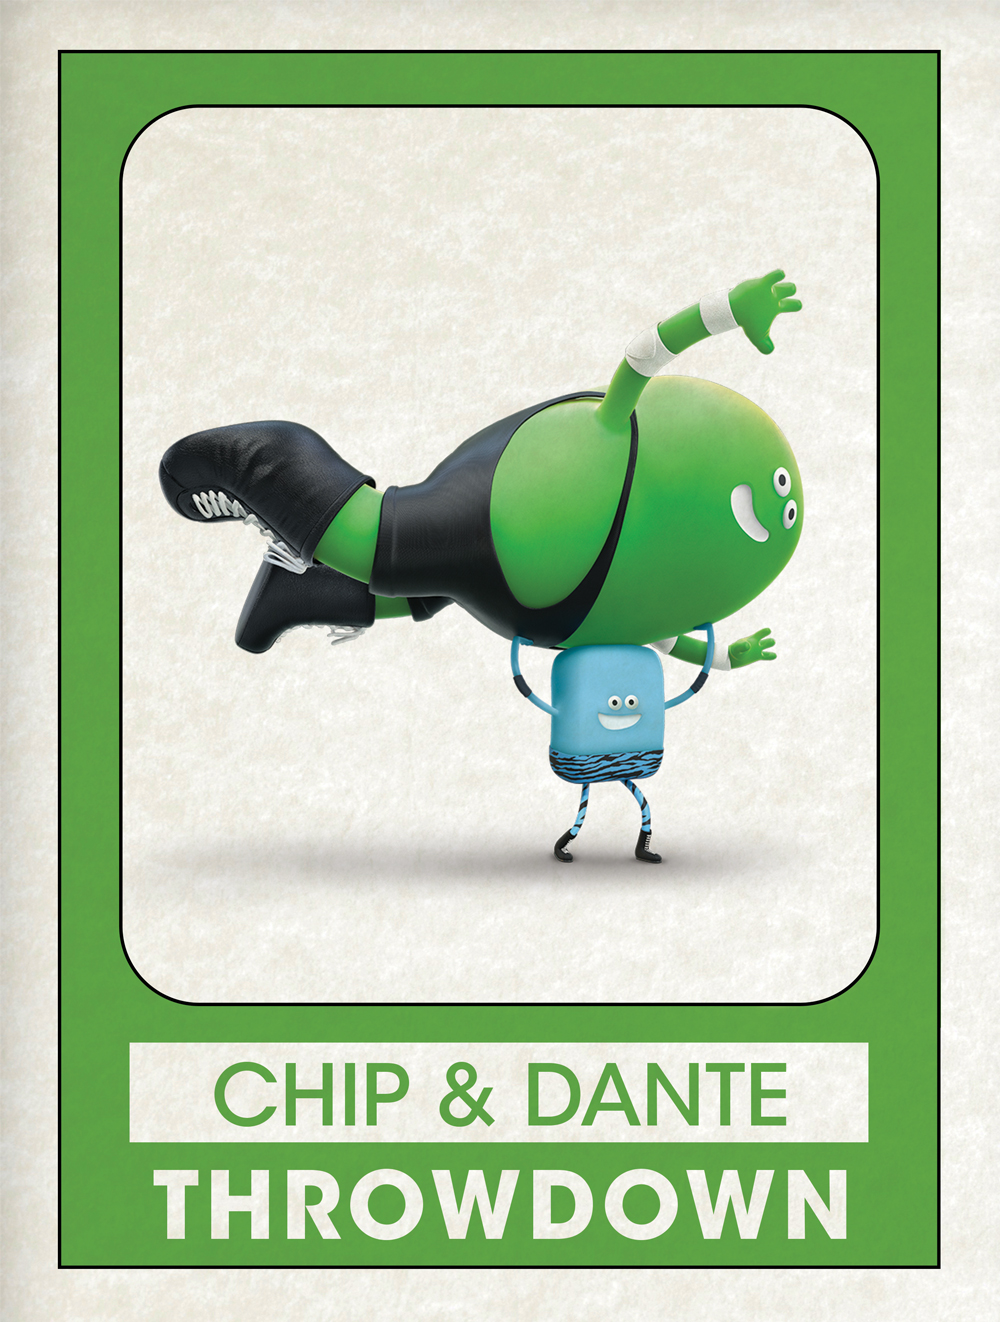 chip-dante-wrestling-green.jpg